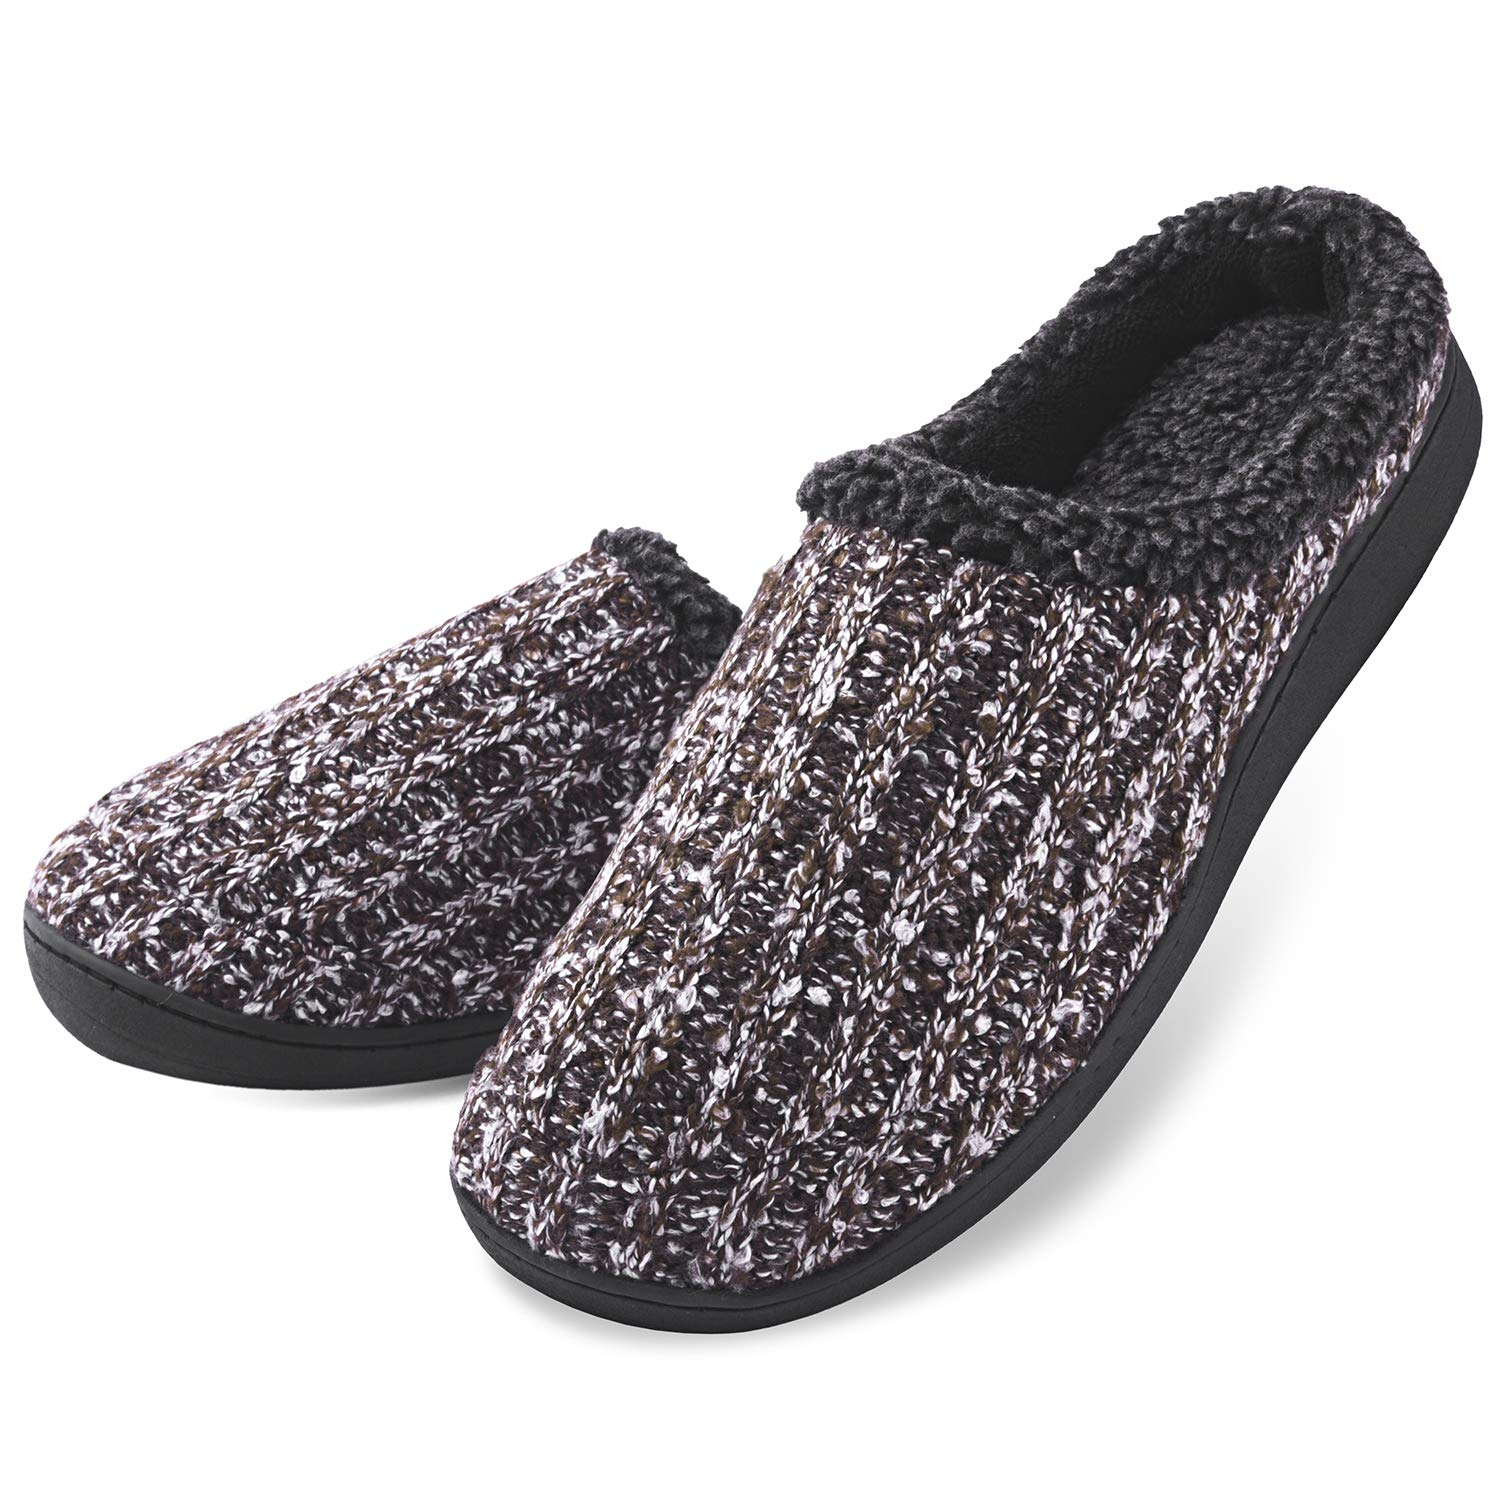 Dasein Men's Comfort Memory Foam Slippers with Plush Fleece Lining Causal Slip On Clog Spring House Shoes with Indoor Outdoor Anti-Skid Rubber Sole